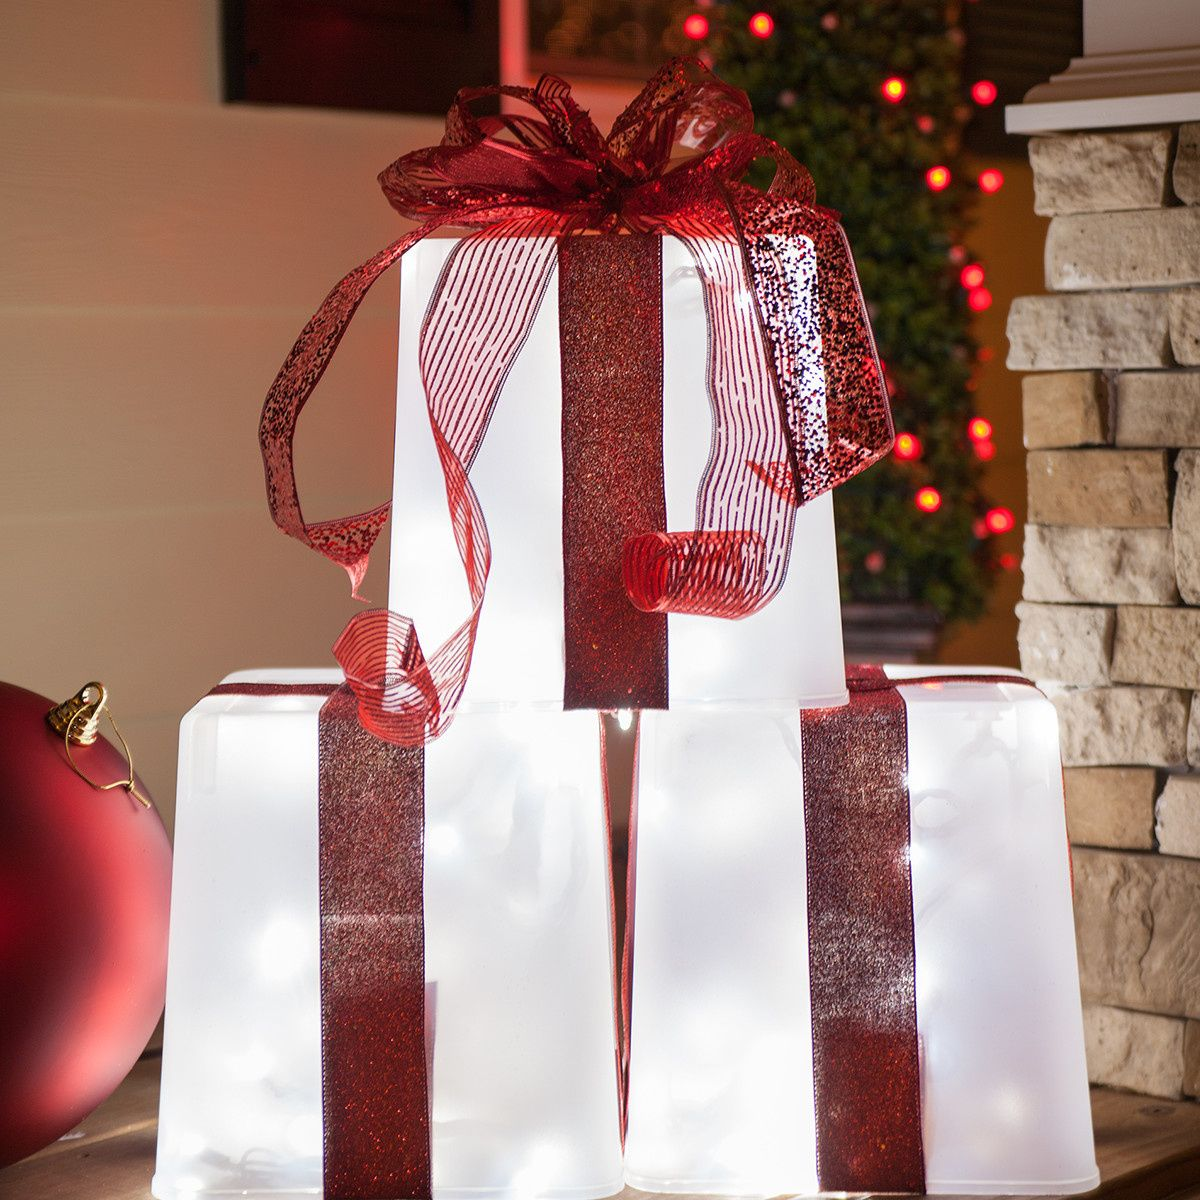 DIY Christmas Decorations 4 Lighted Gift Boxes Christmas